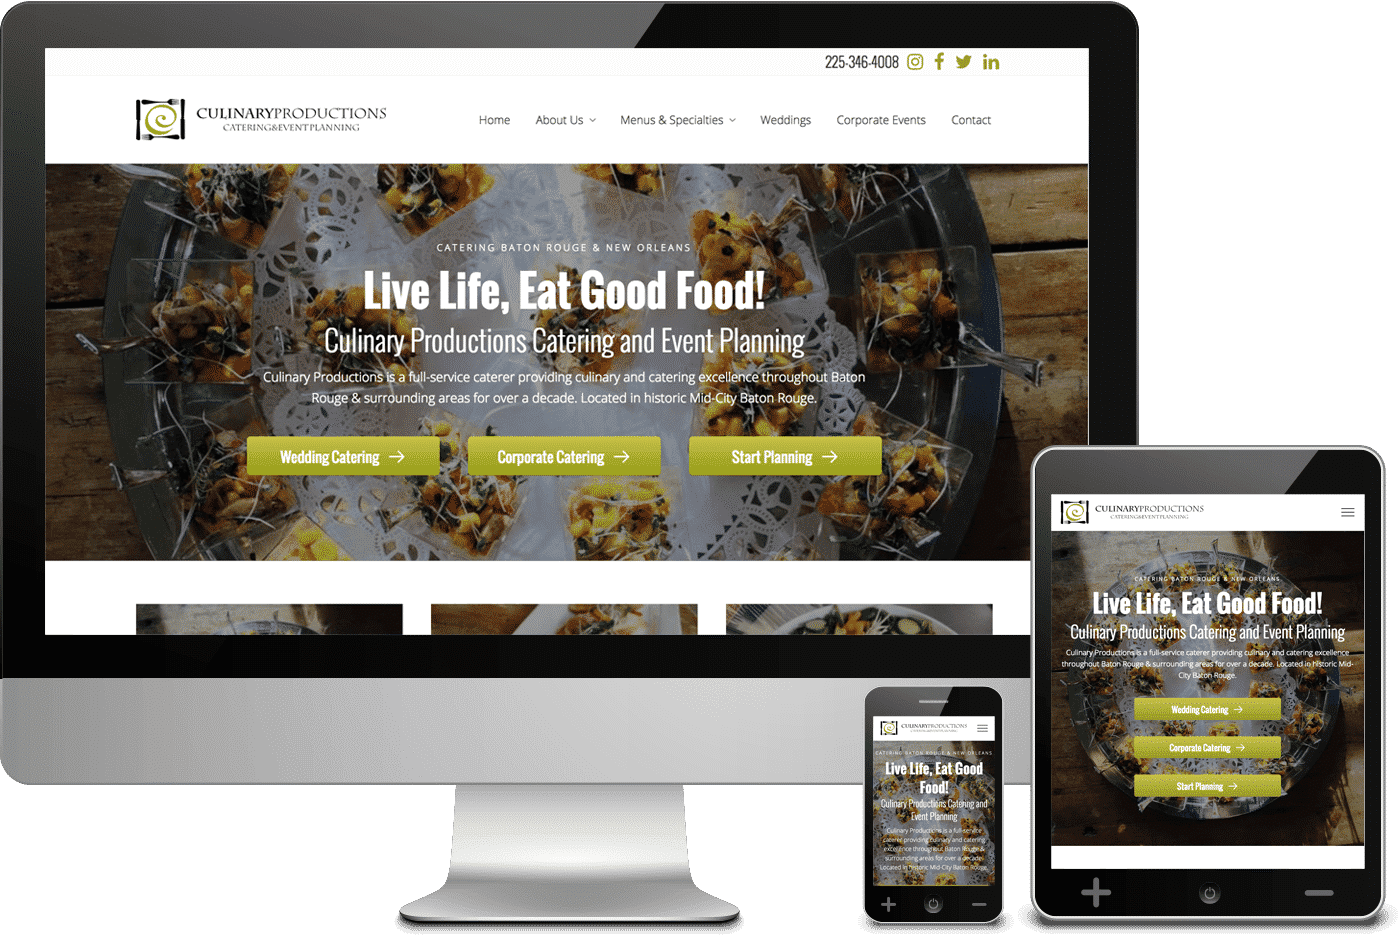 Mobile Responsive Web Design for Culinary Productions